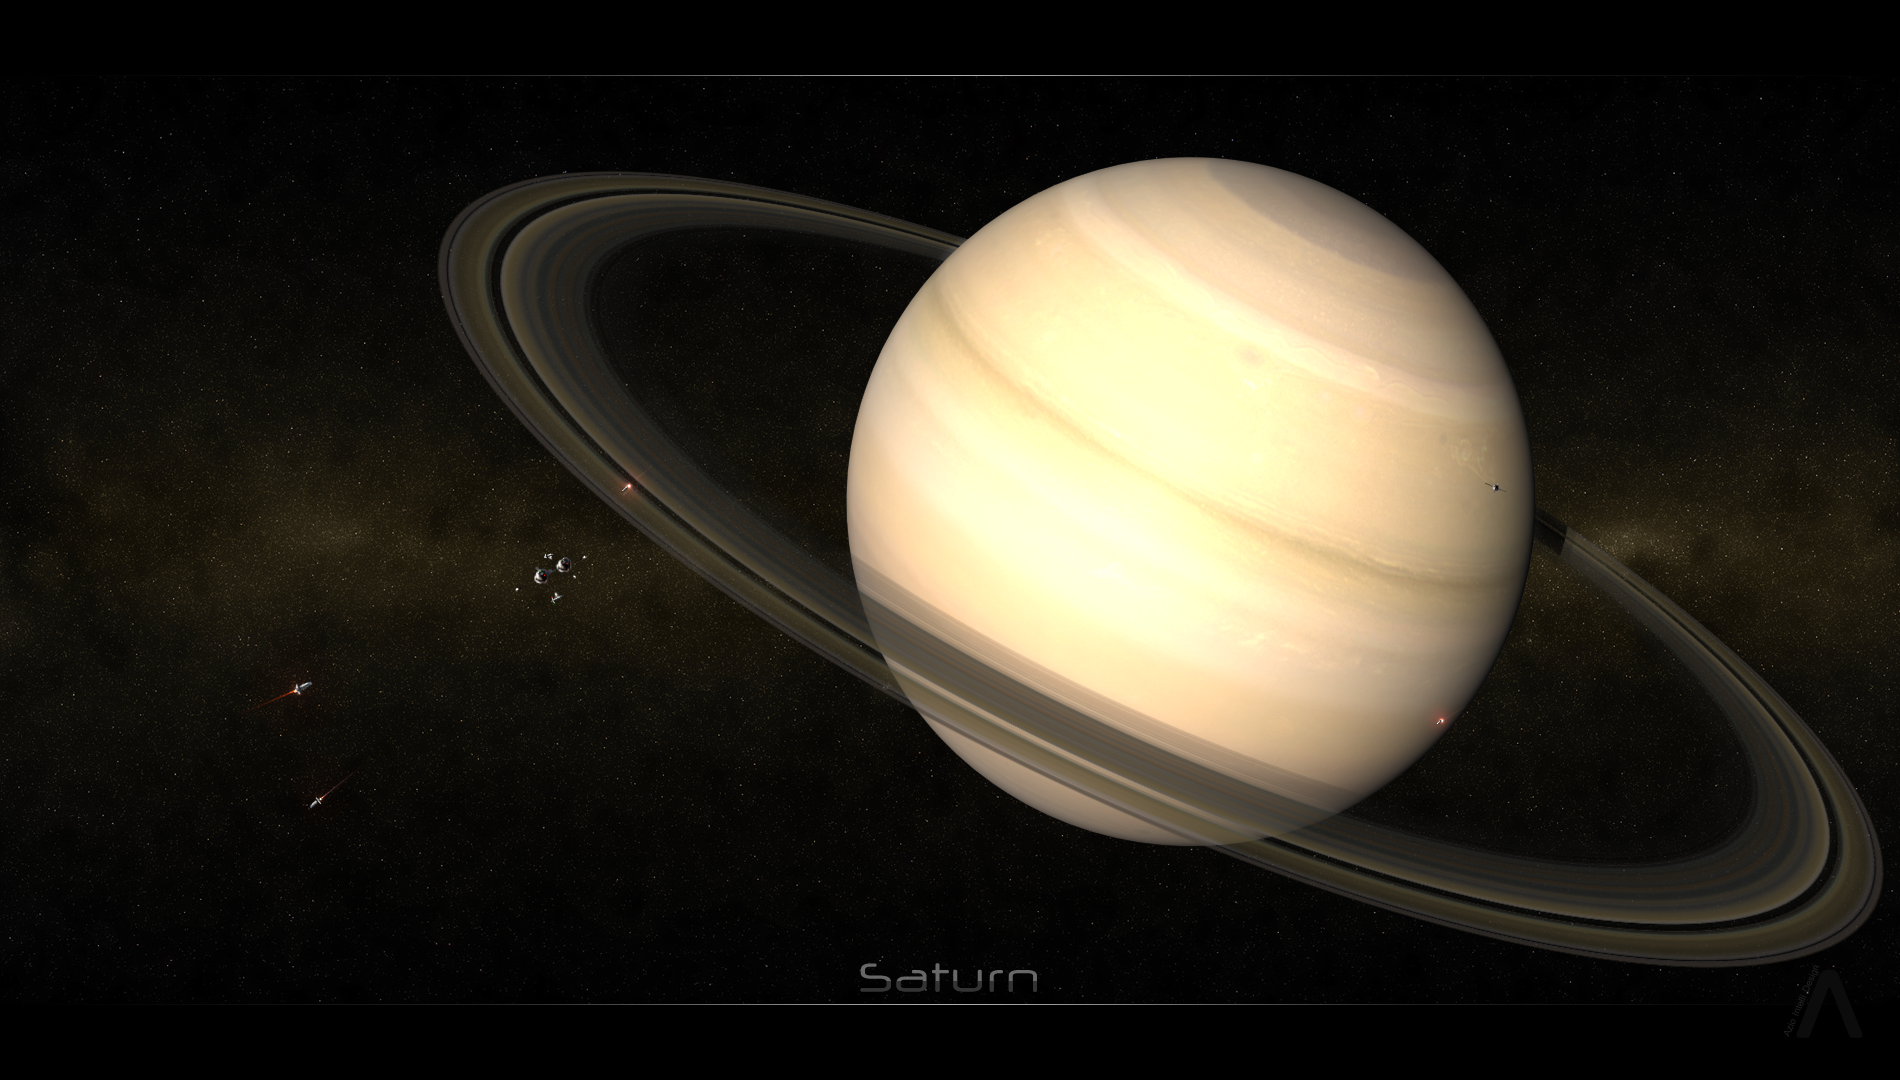 The Space Age - Saturn by BryanDesign on DeviantArt